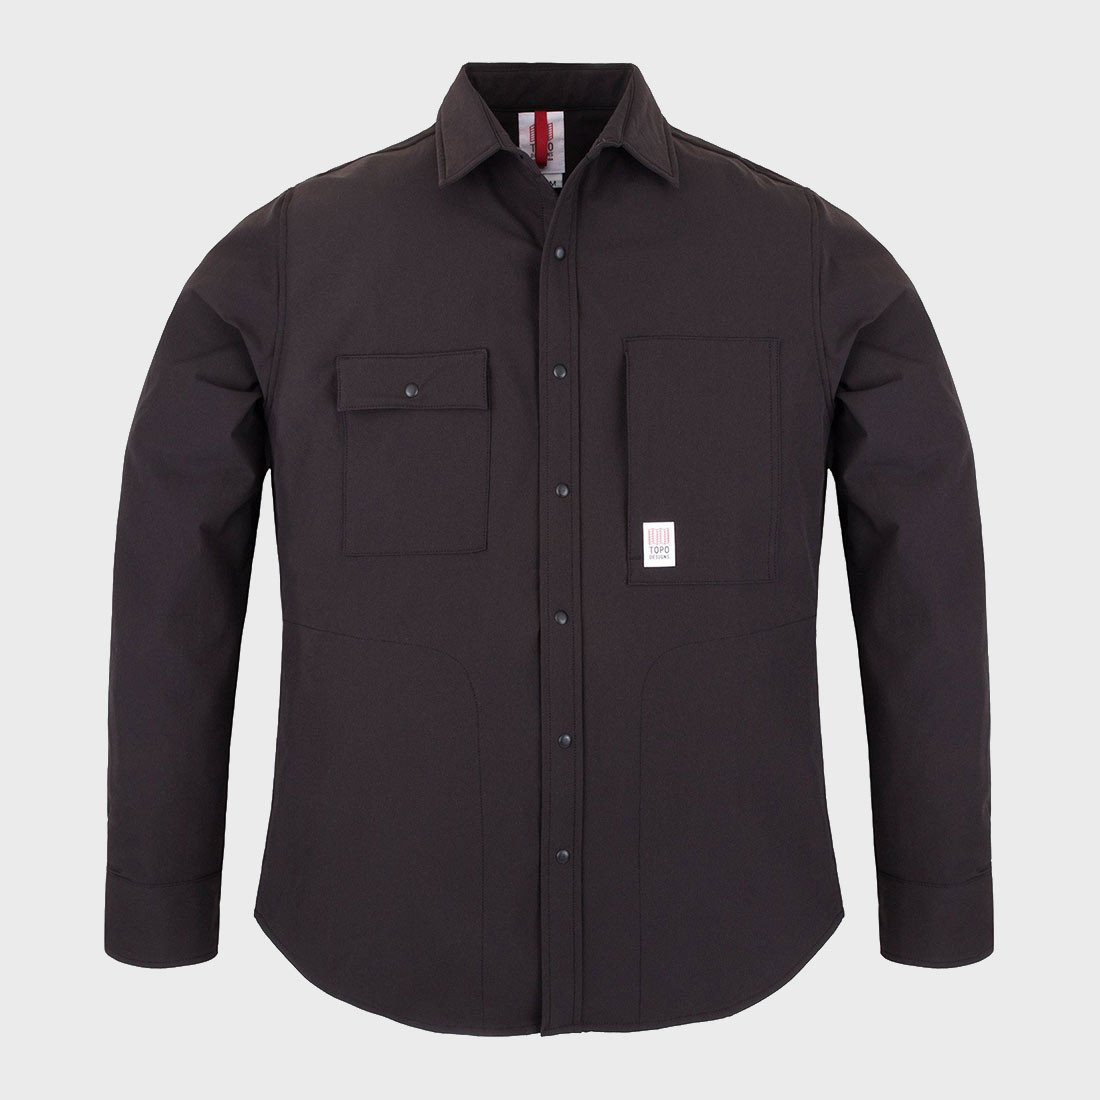 TOPO Designs Breaker Shirt Jacket Black